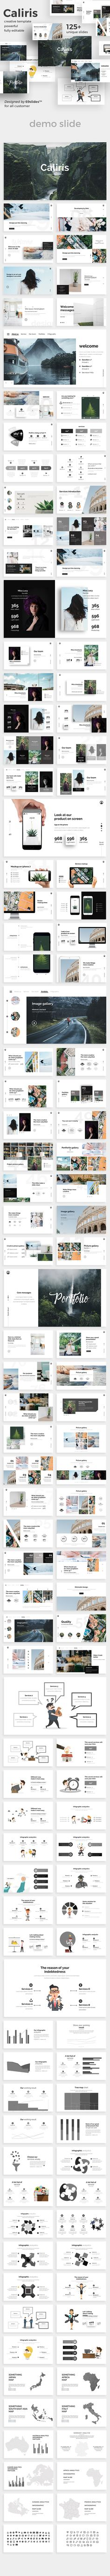 #Caliris Creative #Powerpoint Template - Creative PowerPoint Templates